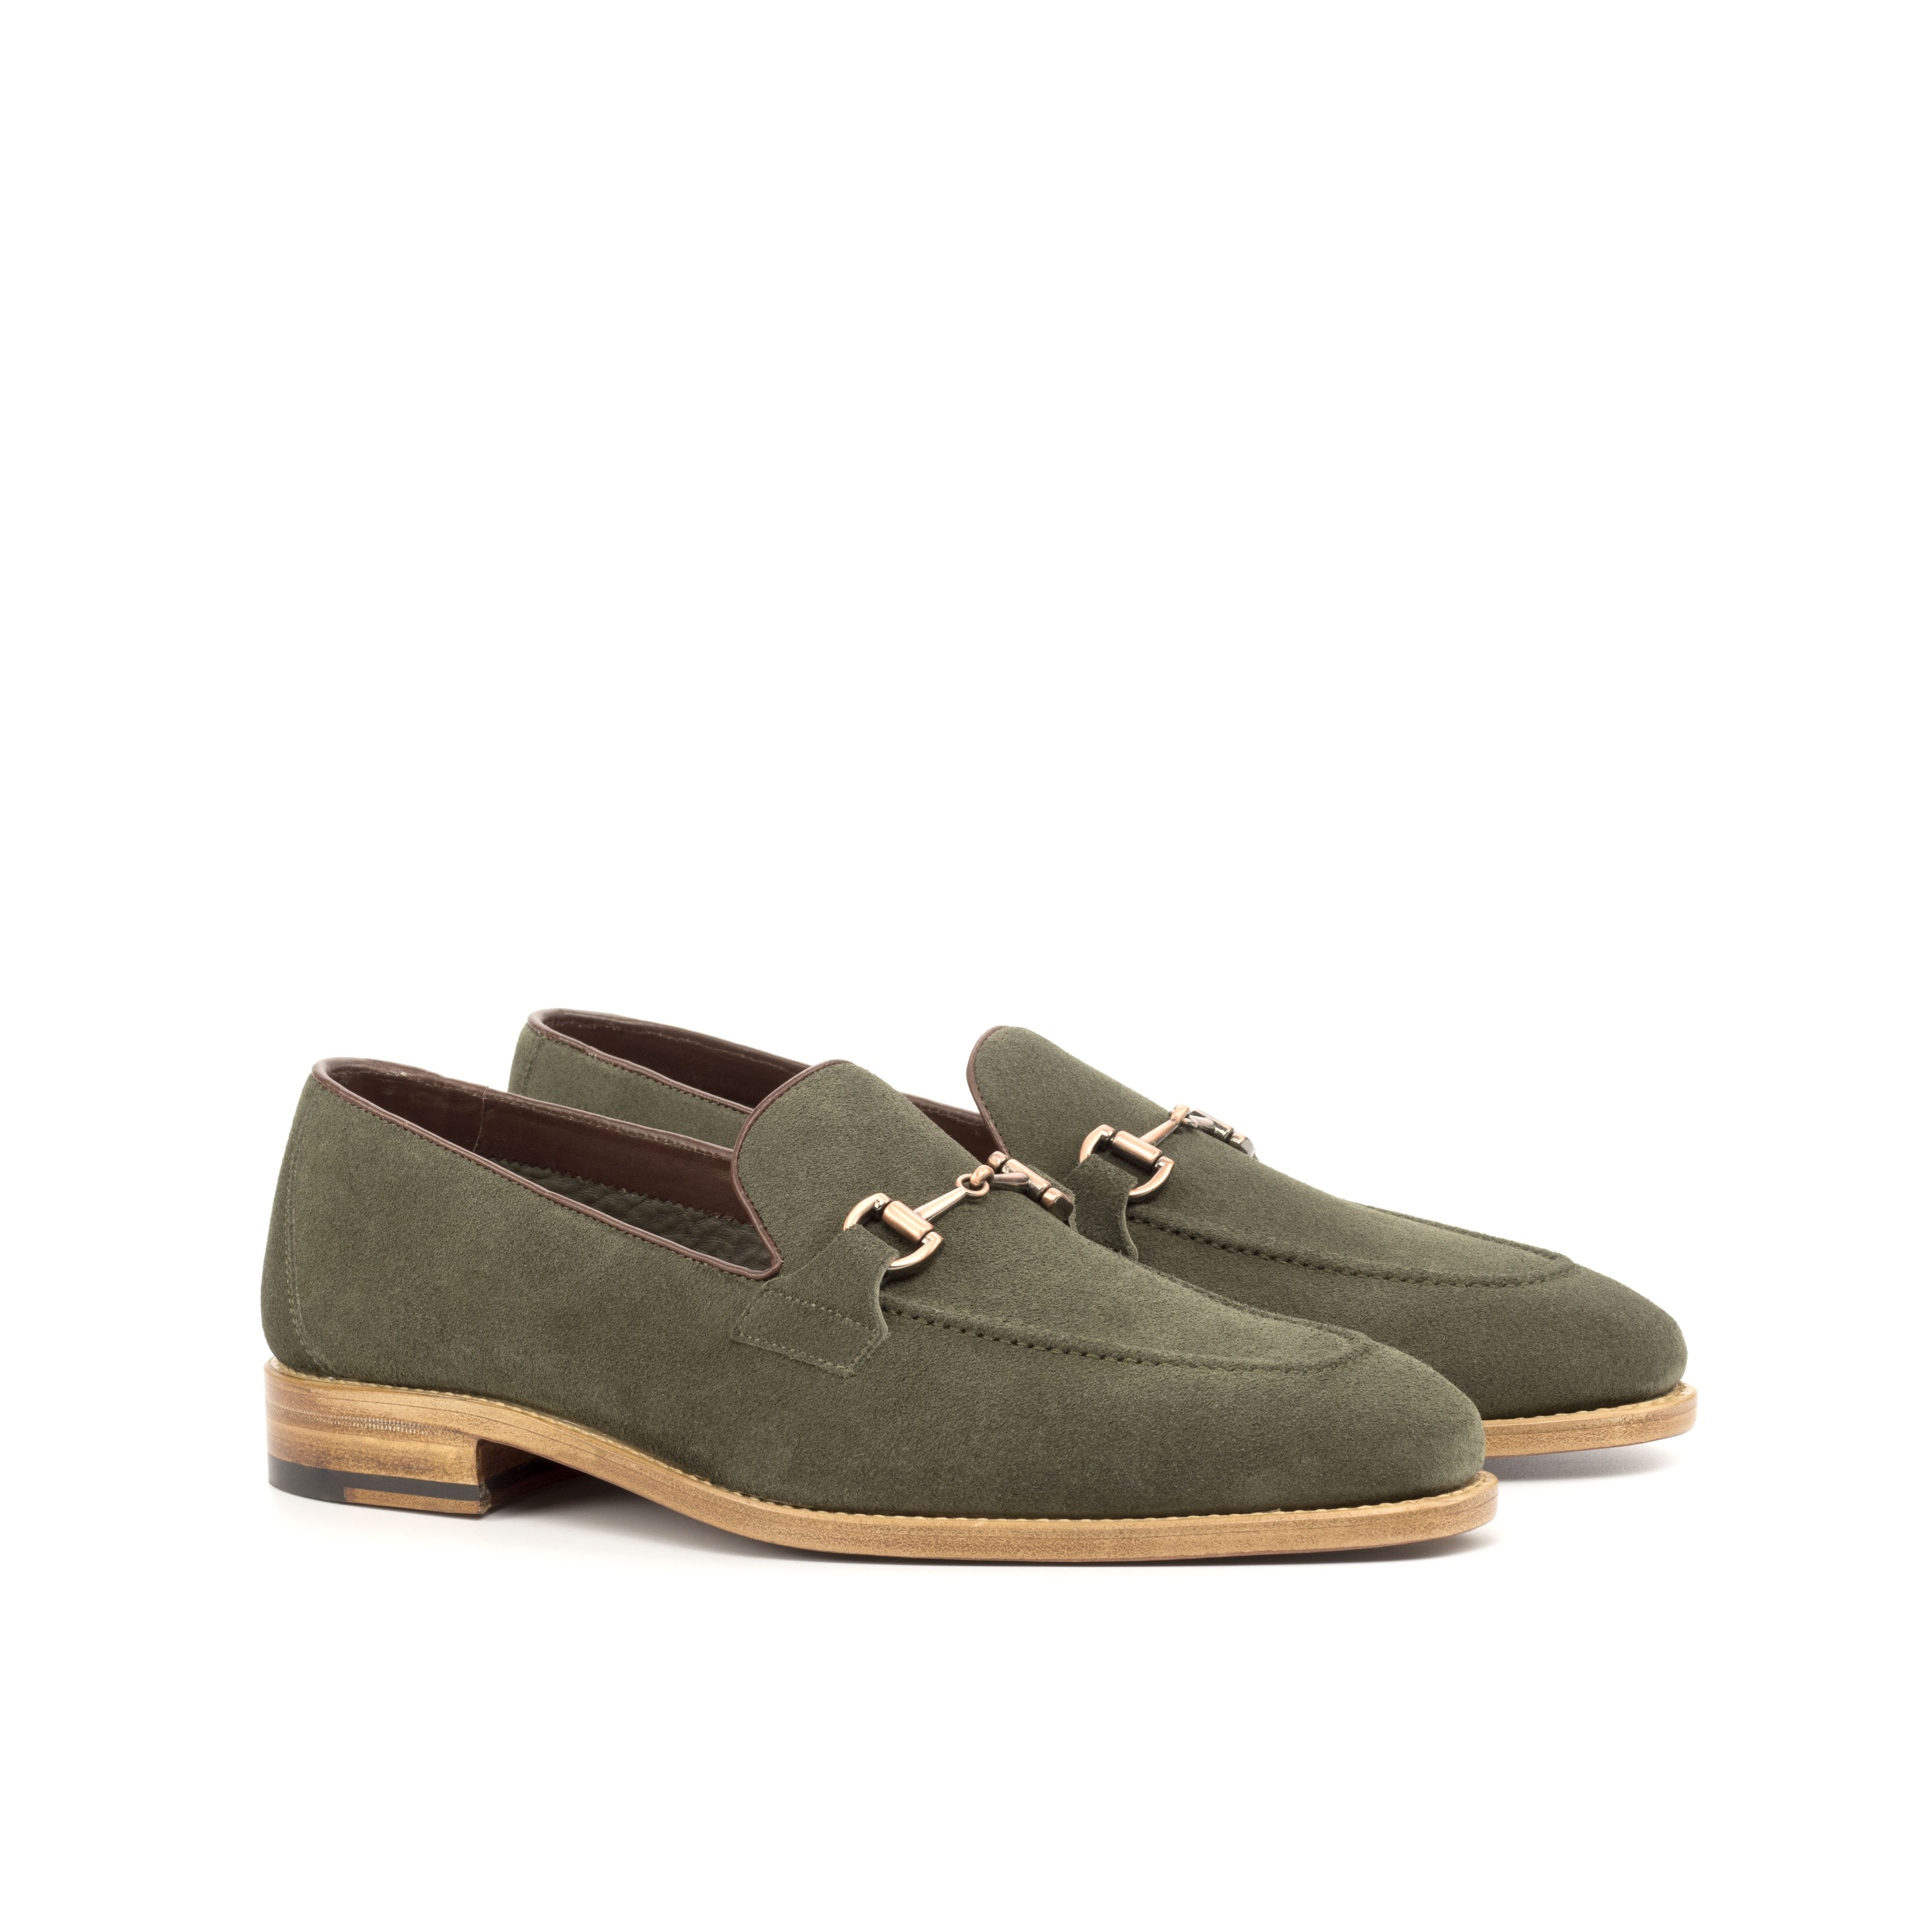 Khaki Suede Flex Loafer